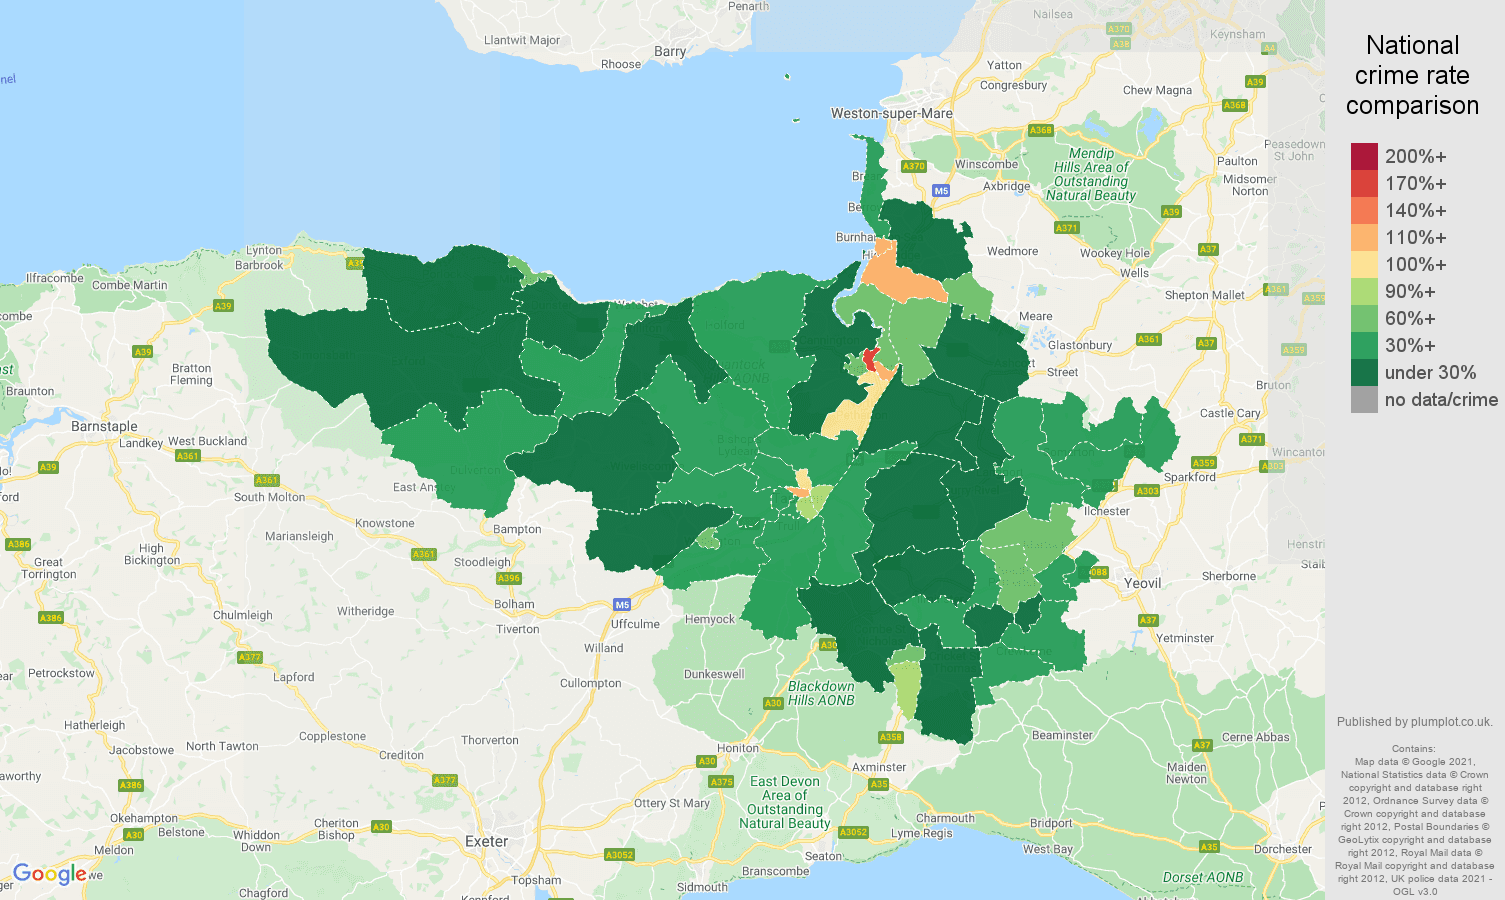 Taunton antisocial behaviour crime rate comparison map